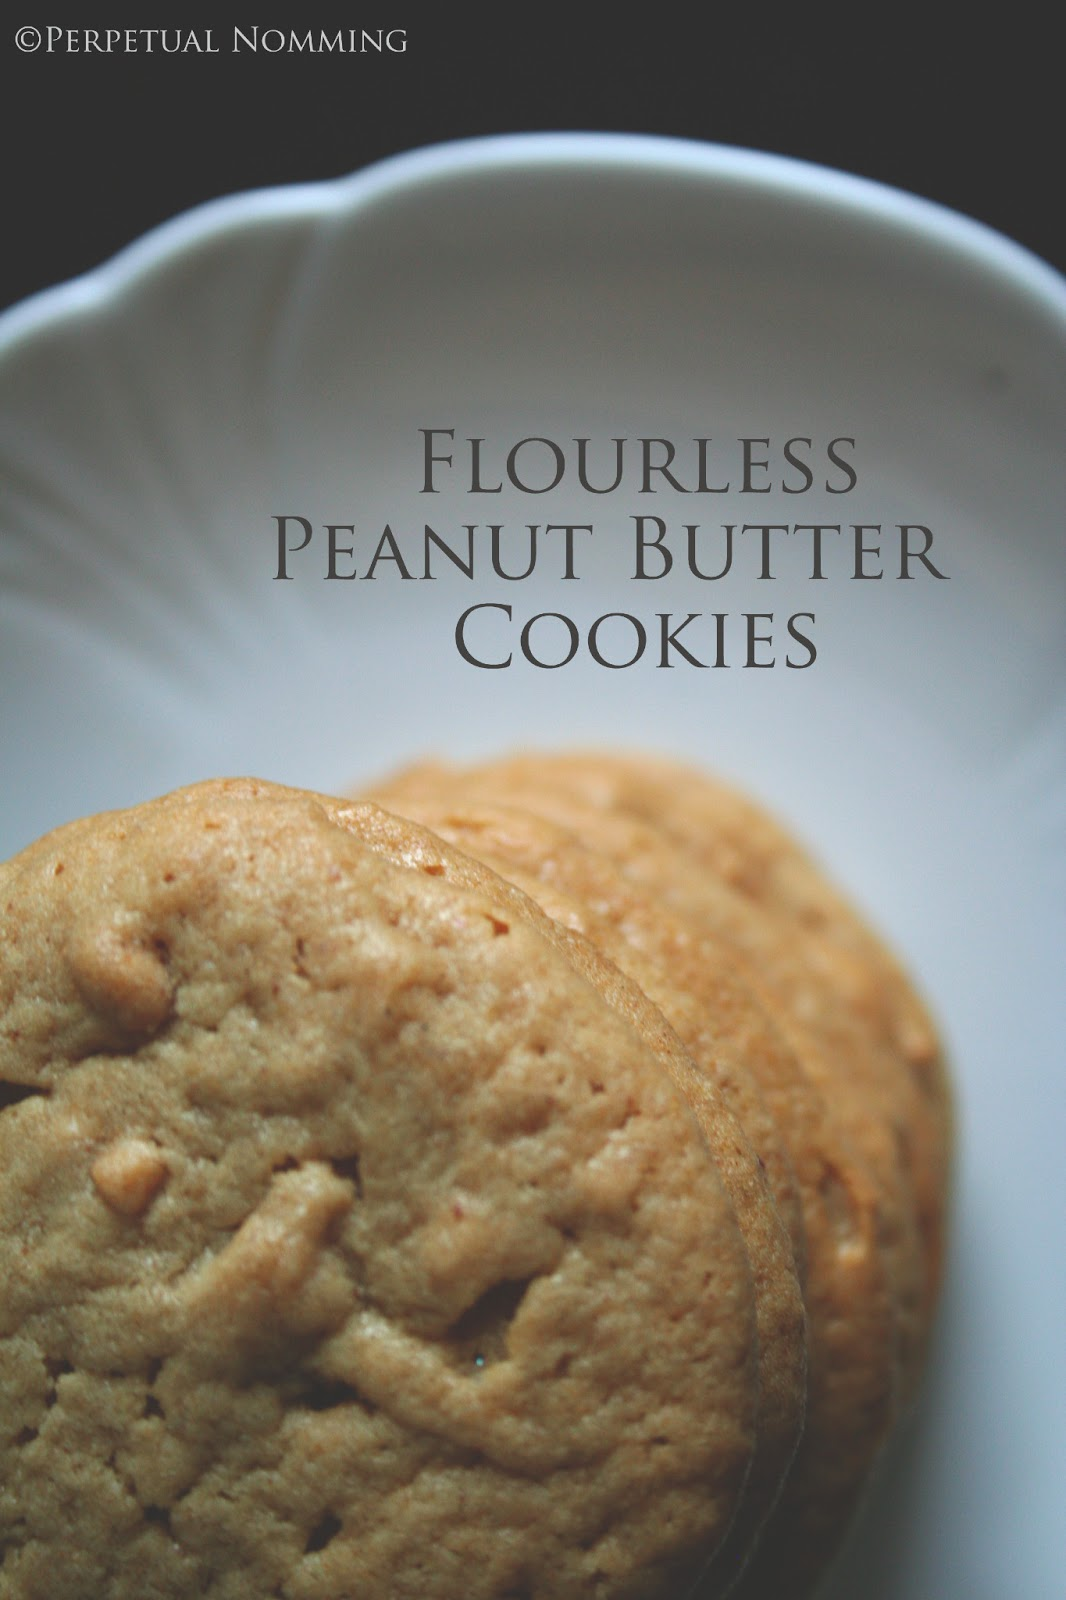 Perpetual Nomming: Flourless Peanut Butter Cookies